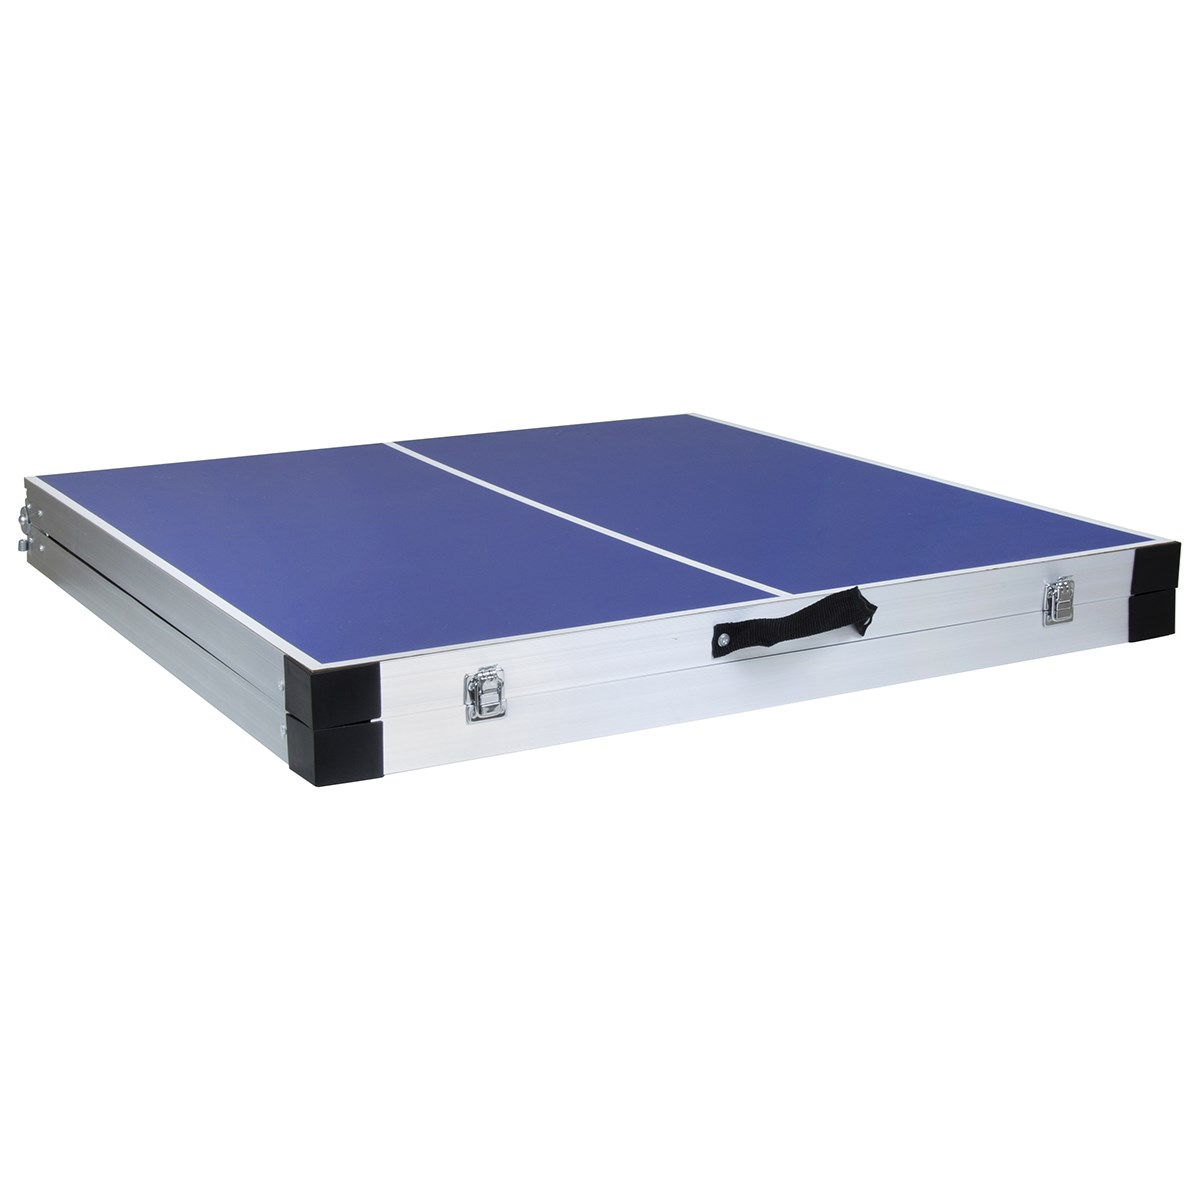 Foldable Table Tennis Table With Accessories Savvysurf Co Uk